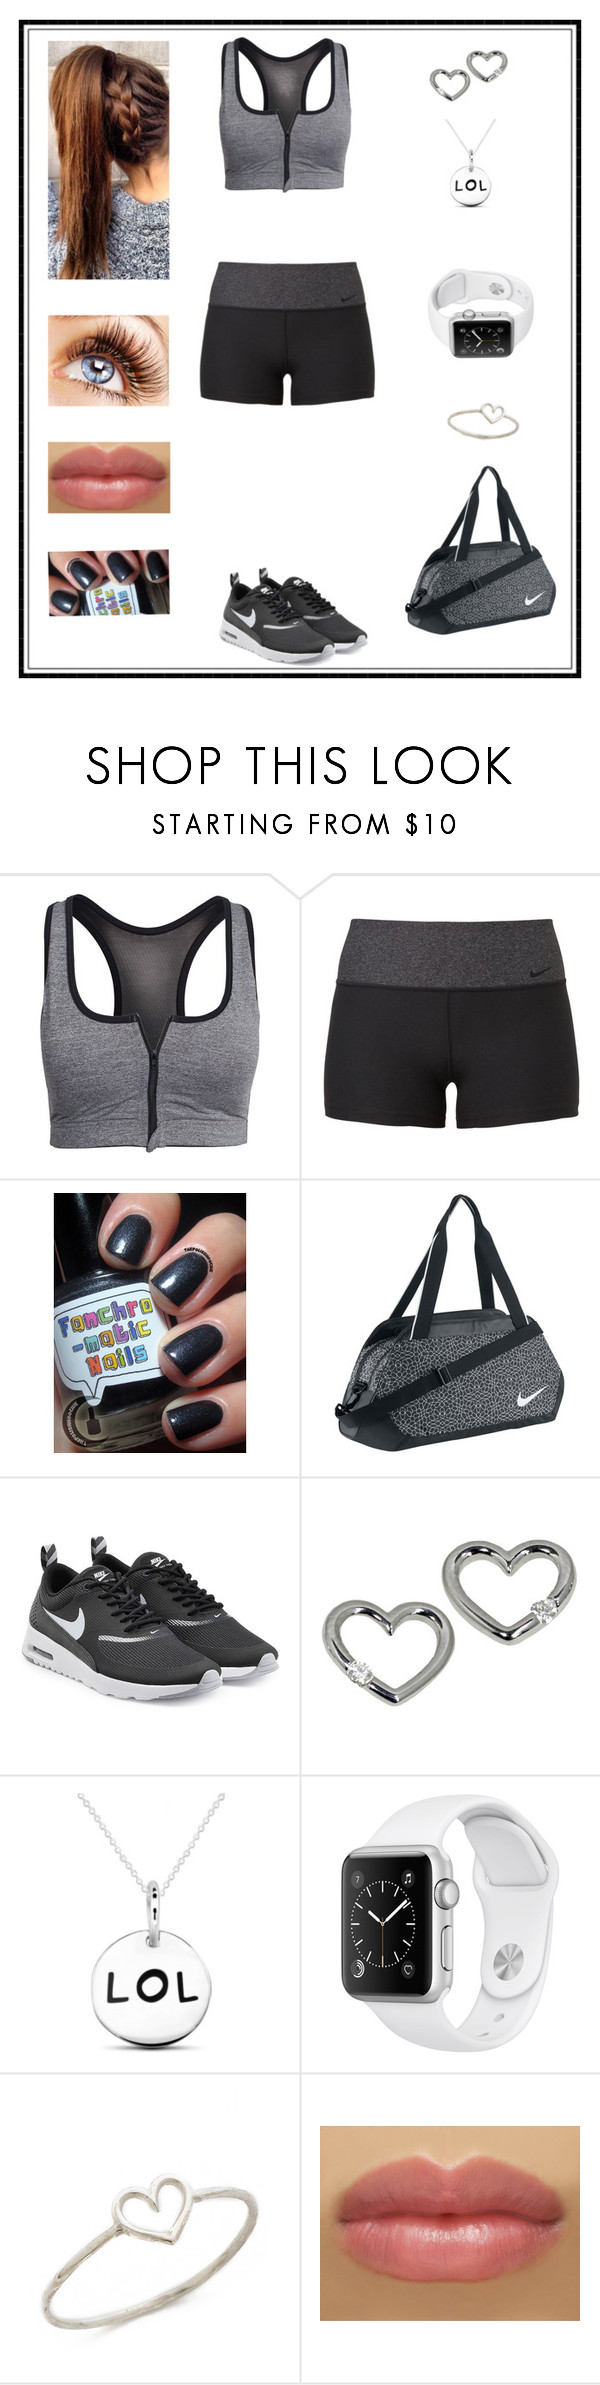 """Untitled # 249"" by binasa87 ❤ liked on Polyvore featuring Drop Of Mindfulness, NIKE and Aurélie Bidermann"